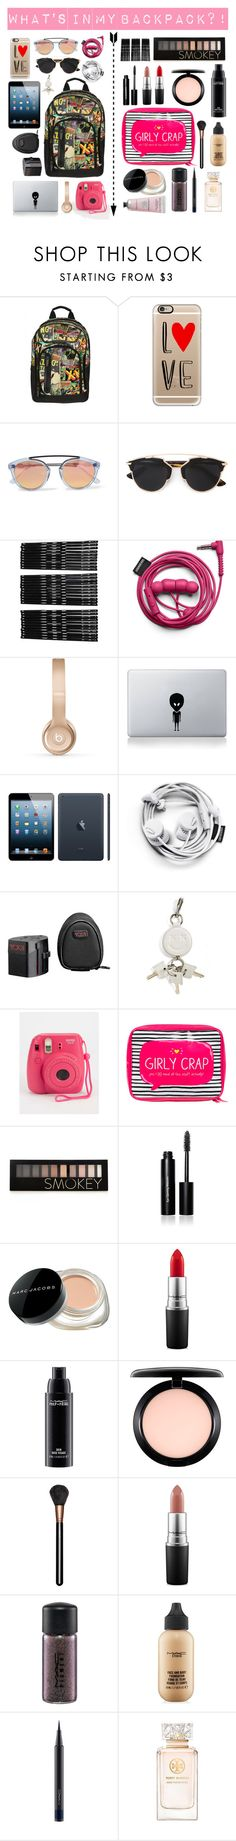 """What's in ma backpack?!"" by ulviyyagenest on Polyvore featuring Casetify, Westward Leaning, Christian Dior, Monki, Beats by Dr. Dre, Apple, Tumi, Alexander Wang, Happy Jackson and Forever 21"